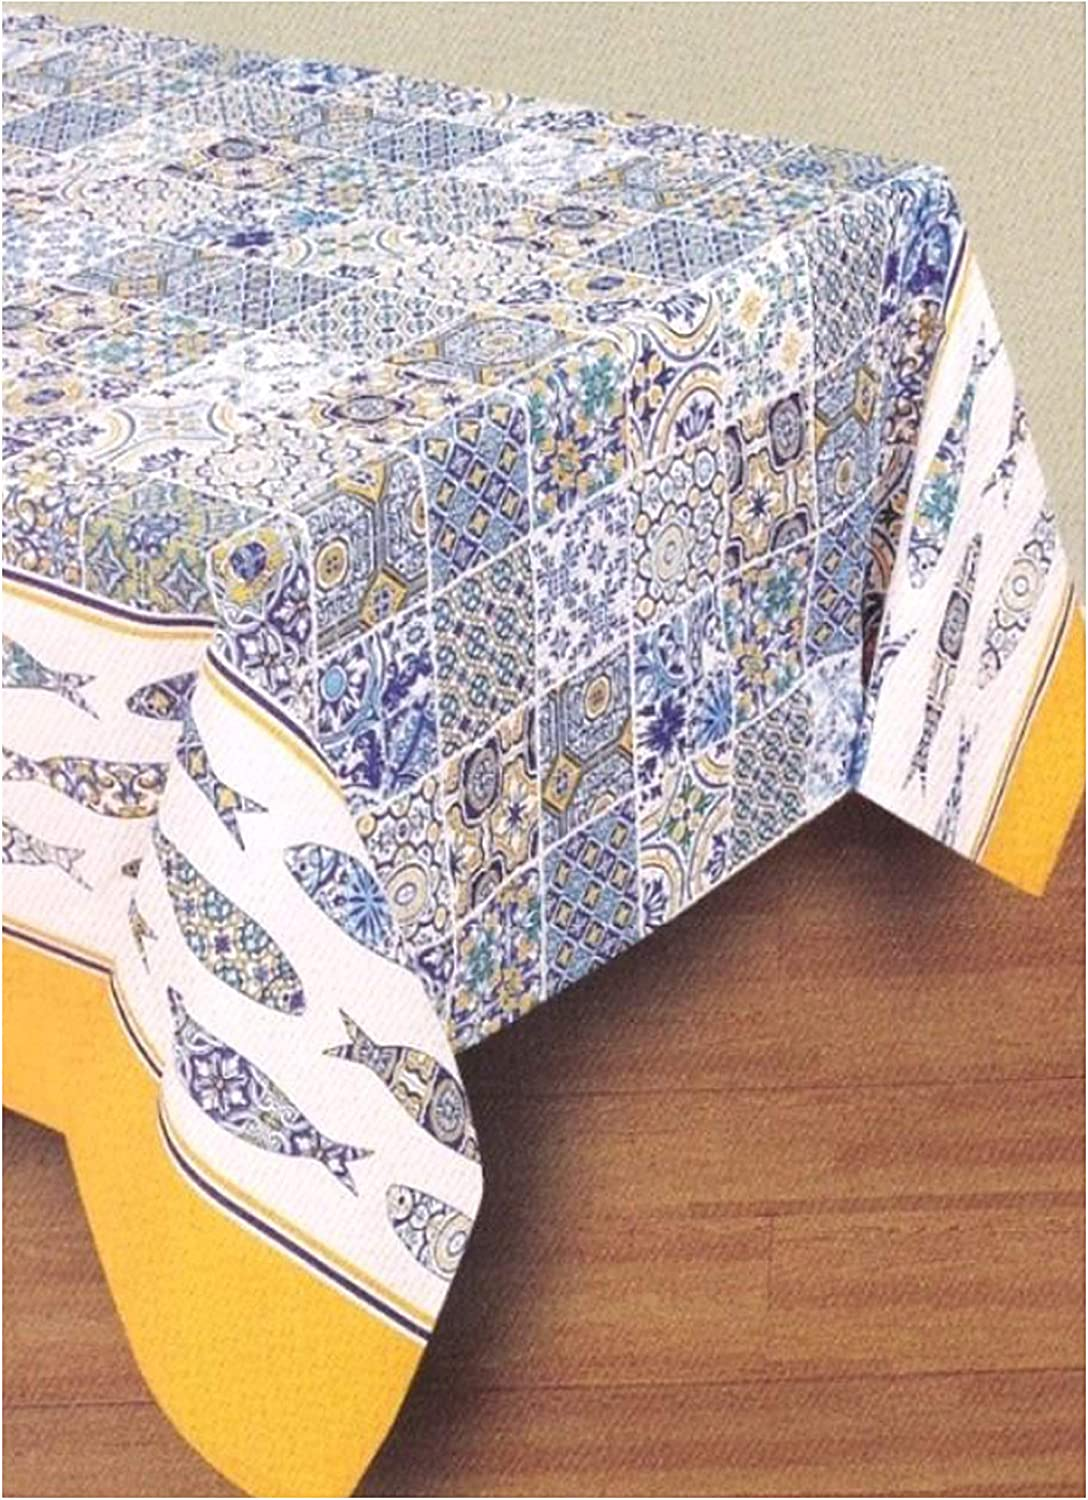 Limol Regional Portuguese Excellent Tablecloth with Department store x 13 Pattern 62